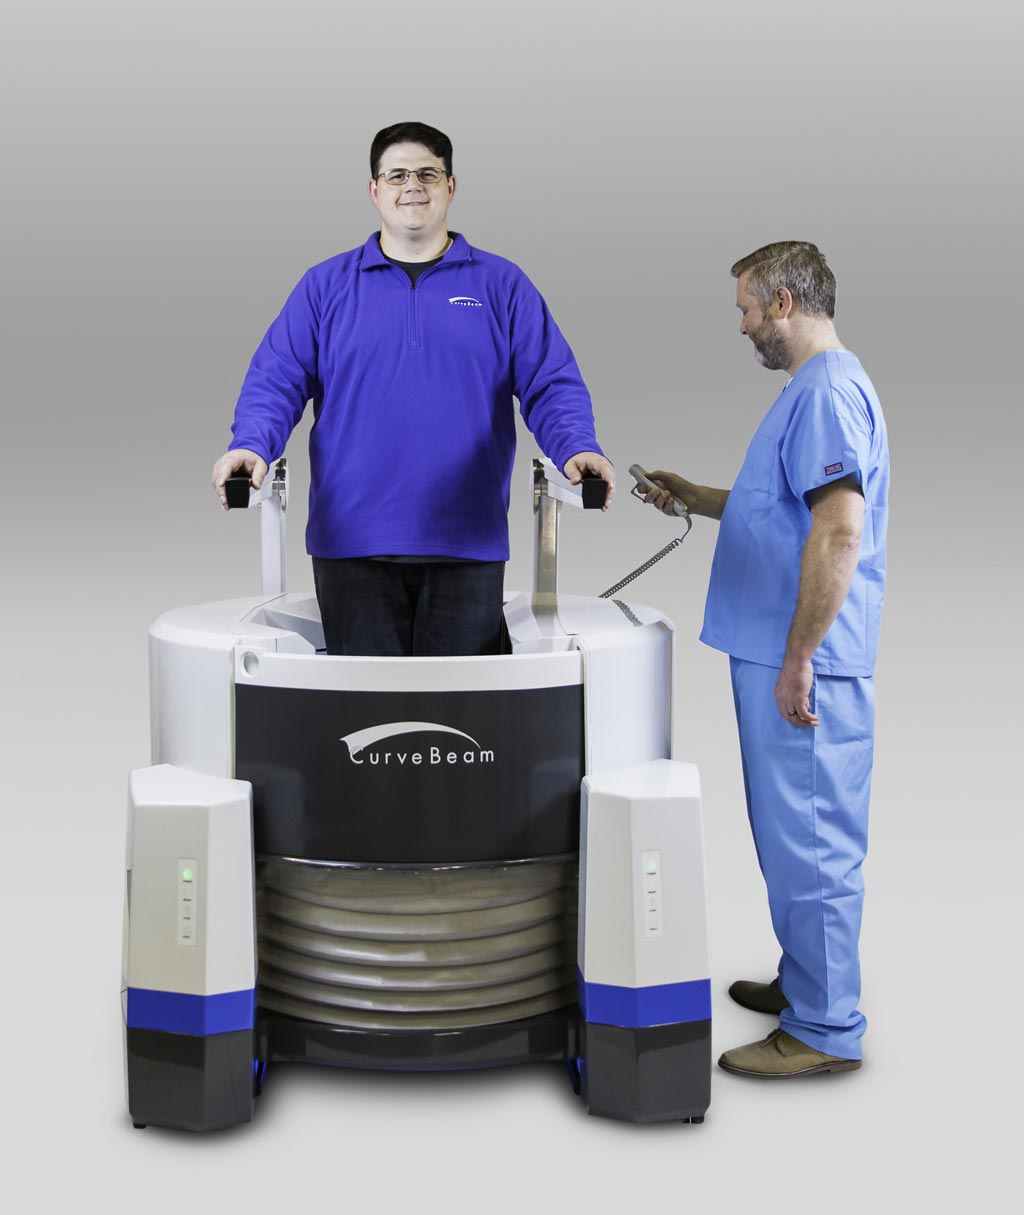 Image: The LineUP orthopedic extremity CT system (Photo courtesy of CurveBeam).